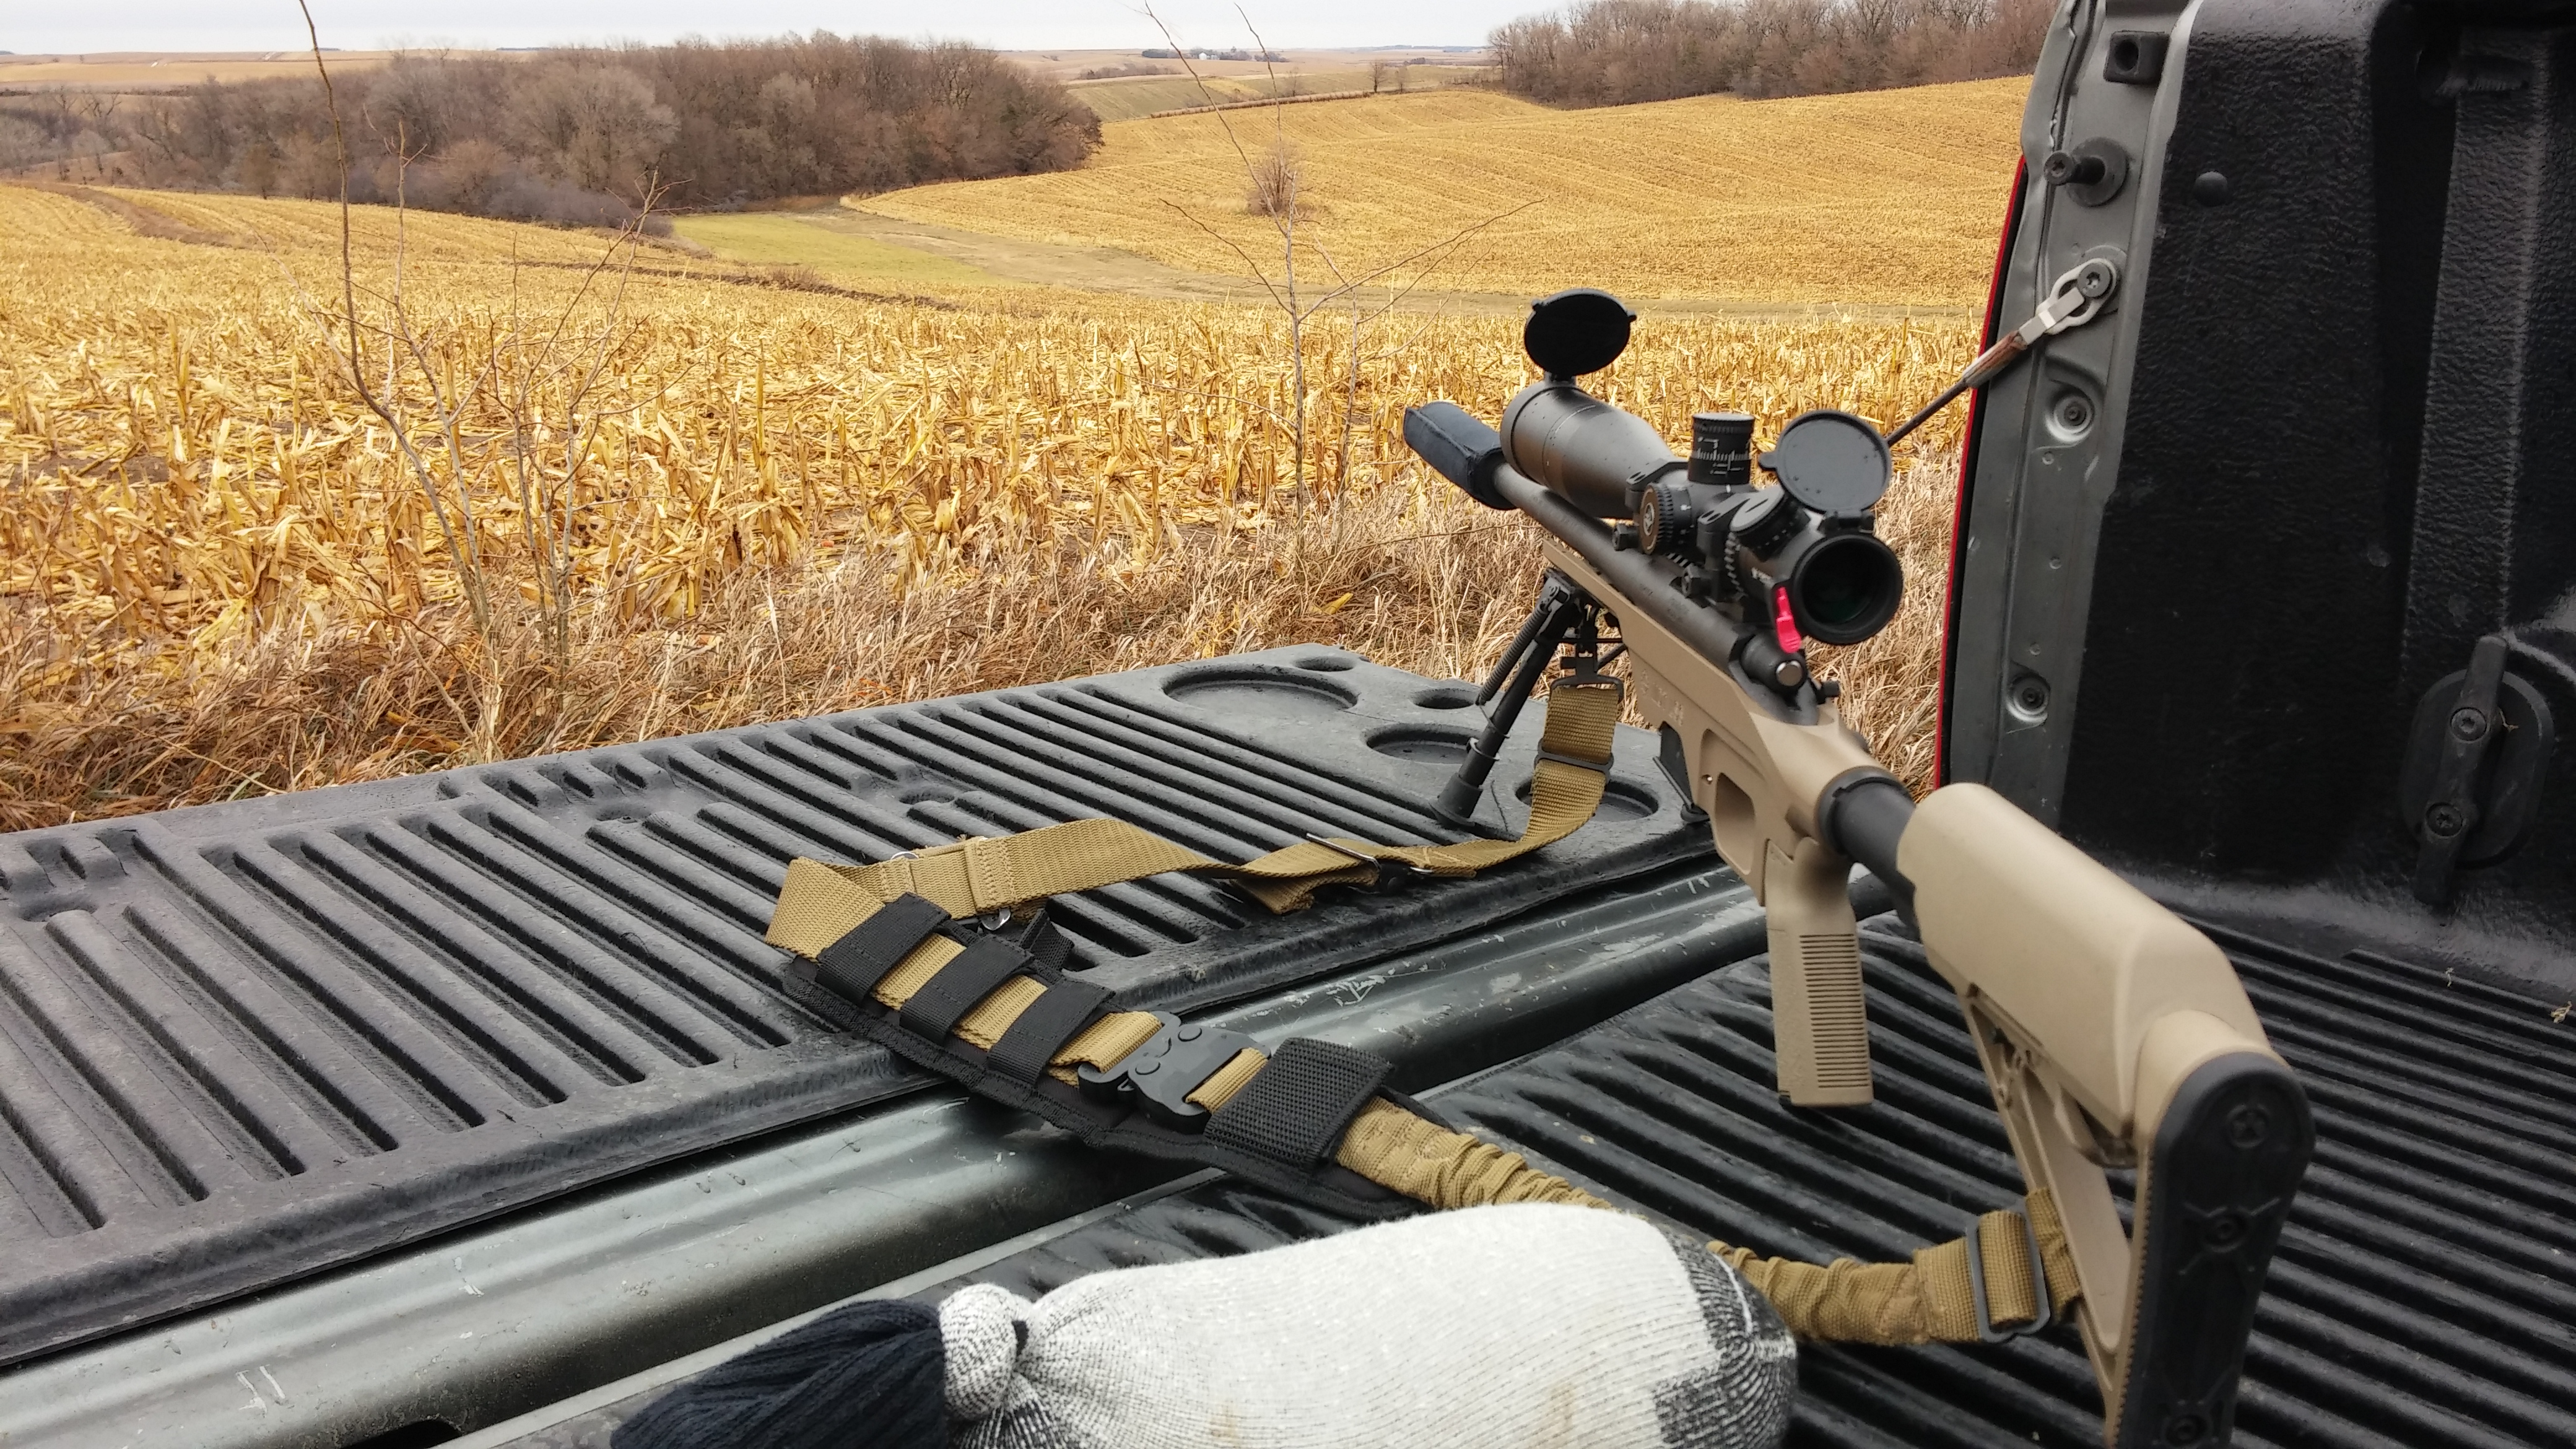 Lightweight & Inexpensive, the MDT LSS Chassis Fills a Much-needed Spot in the Market